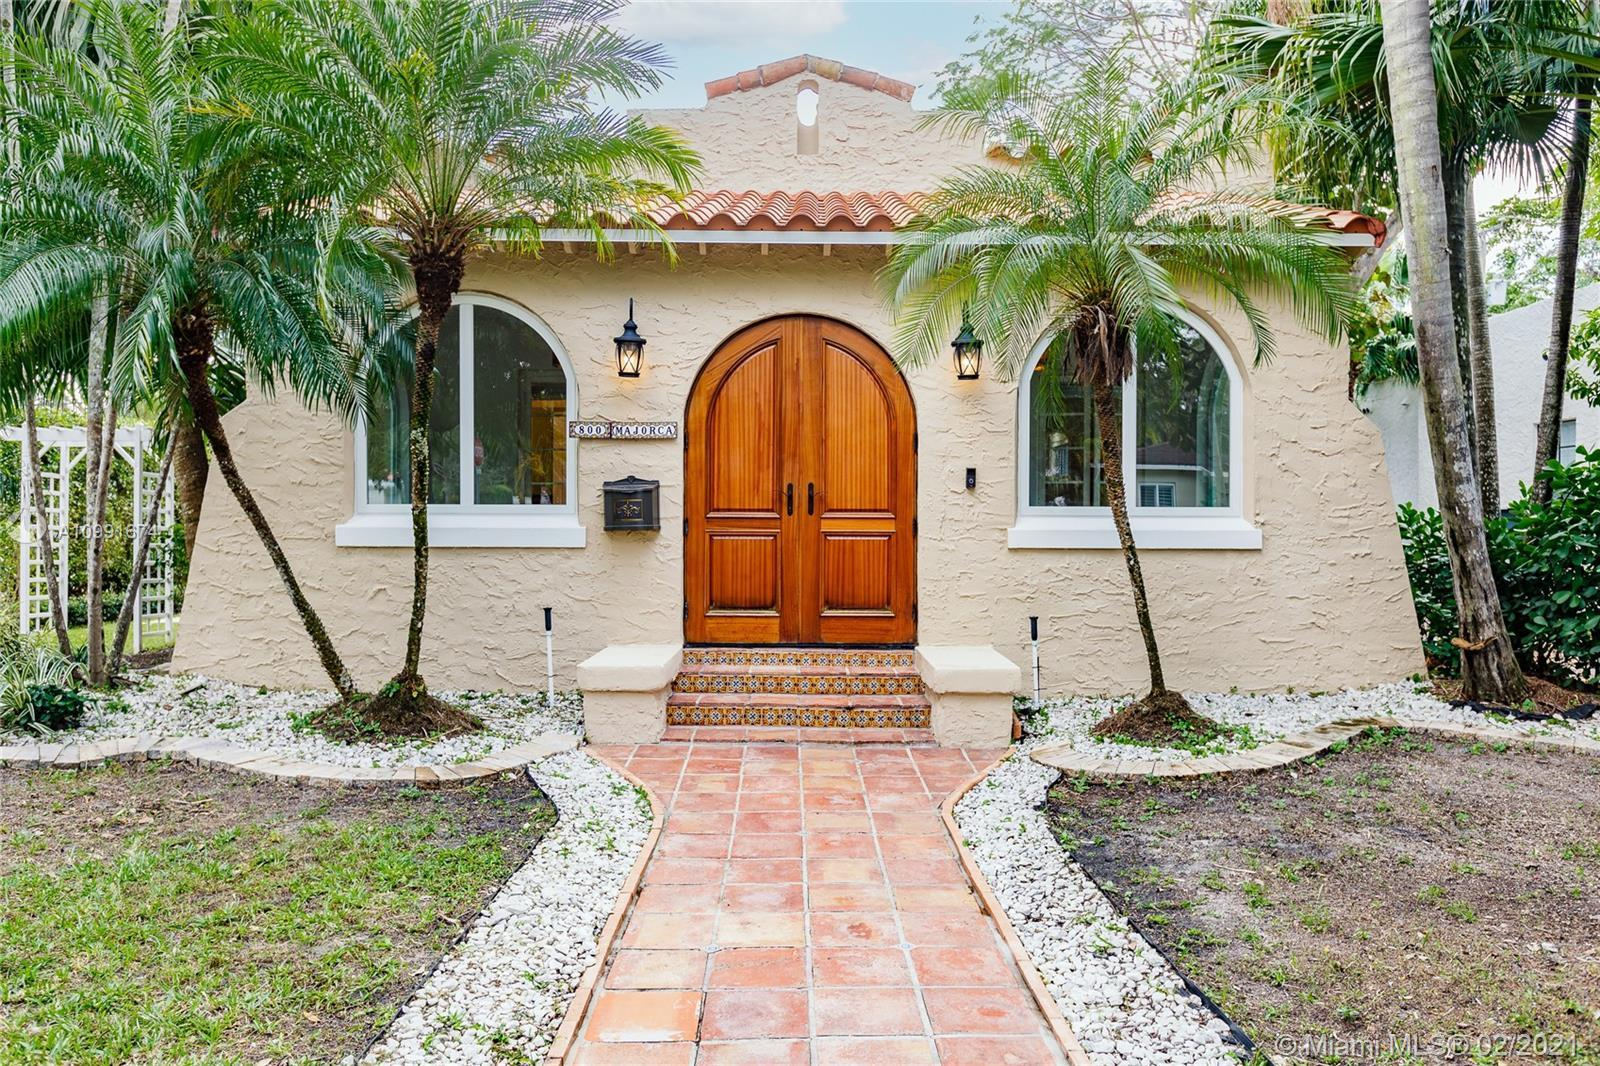 Beautifully renovated Old Spanish Home near Miracle Mile & Granada Golf Course. Impeccably remodeled